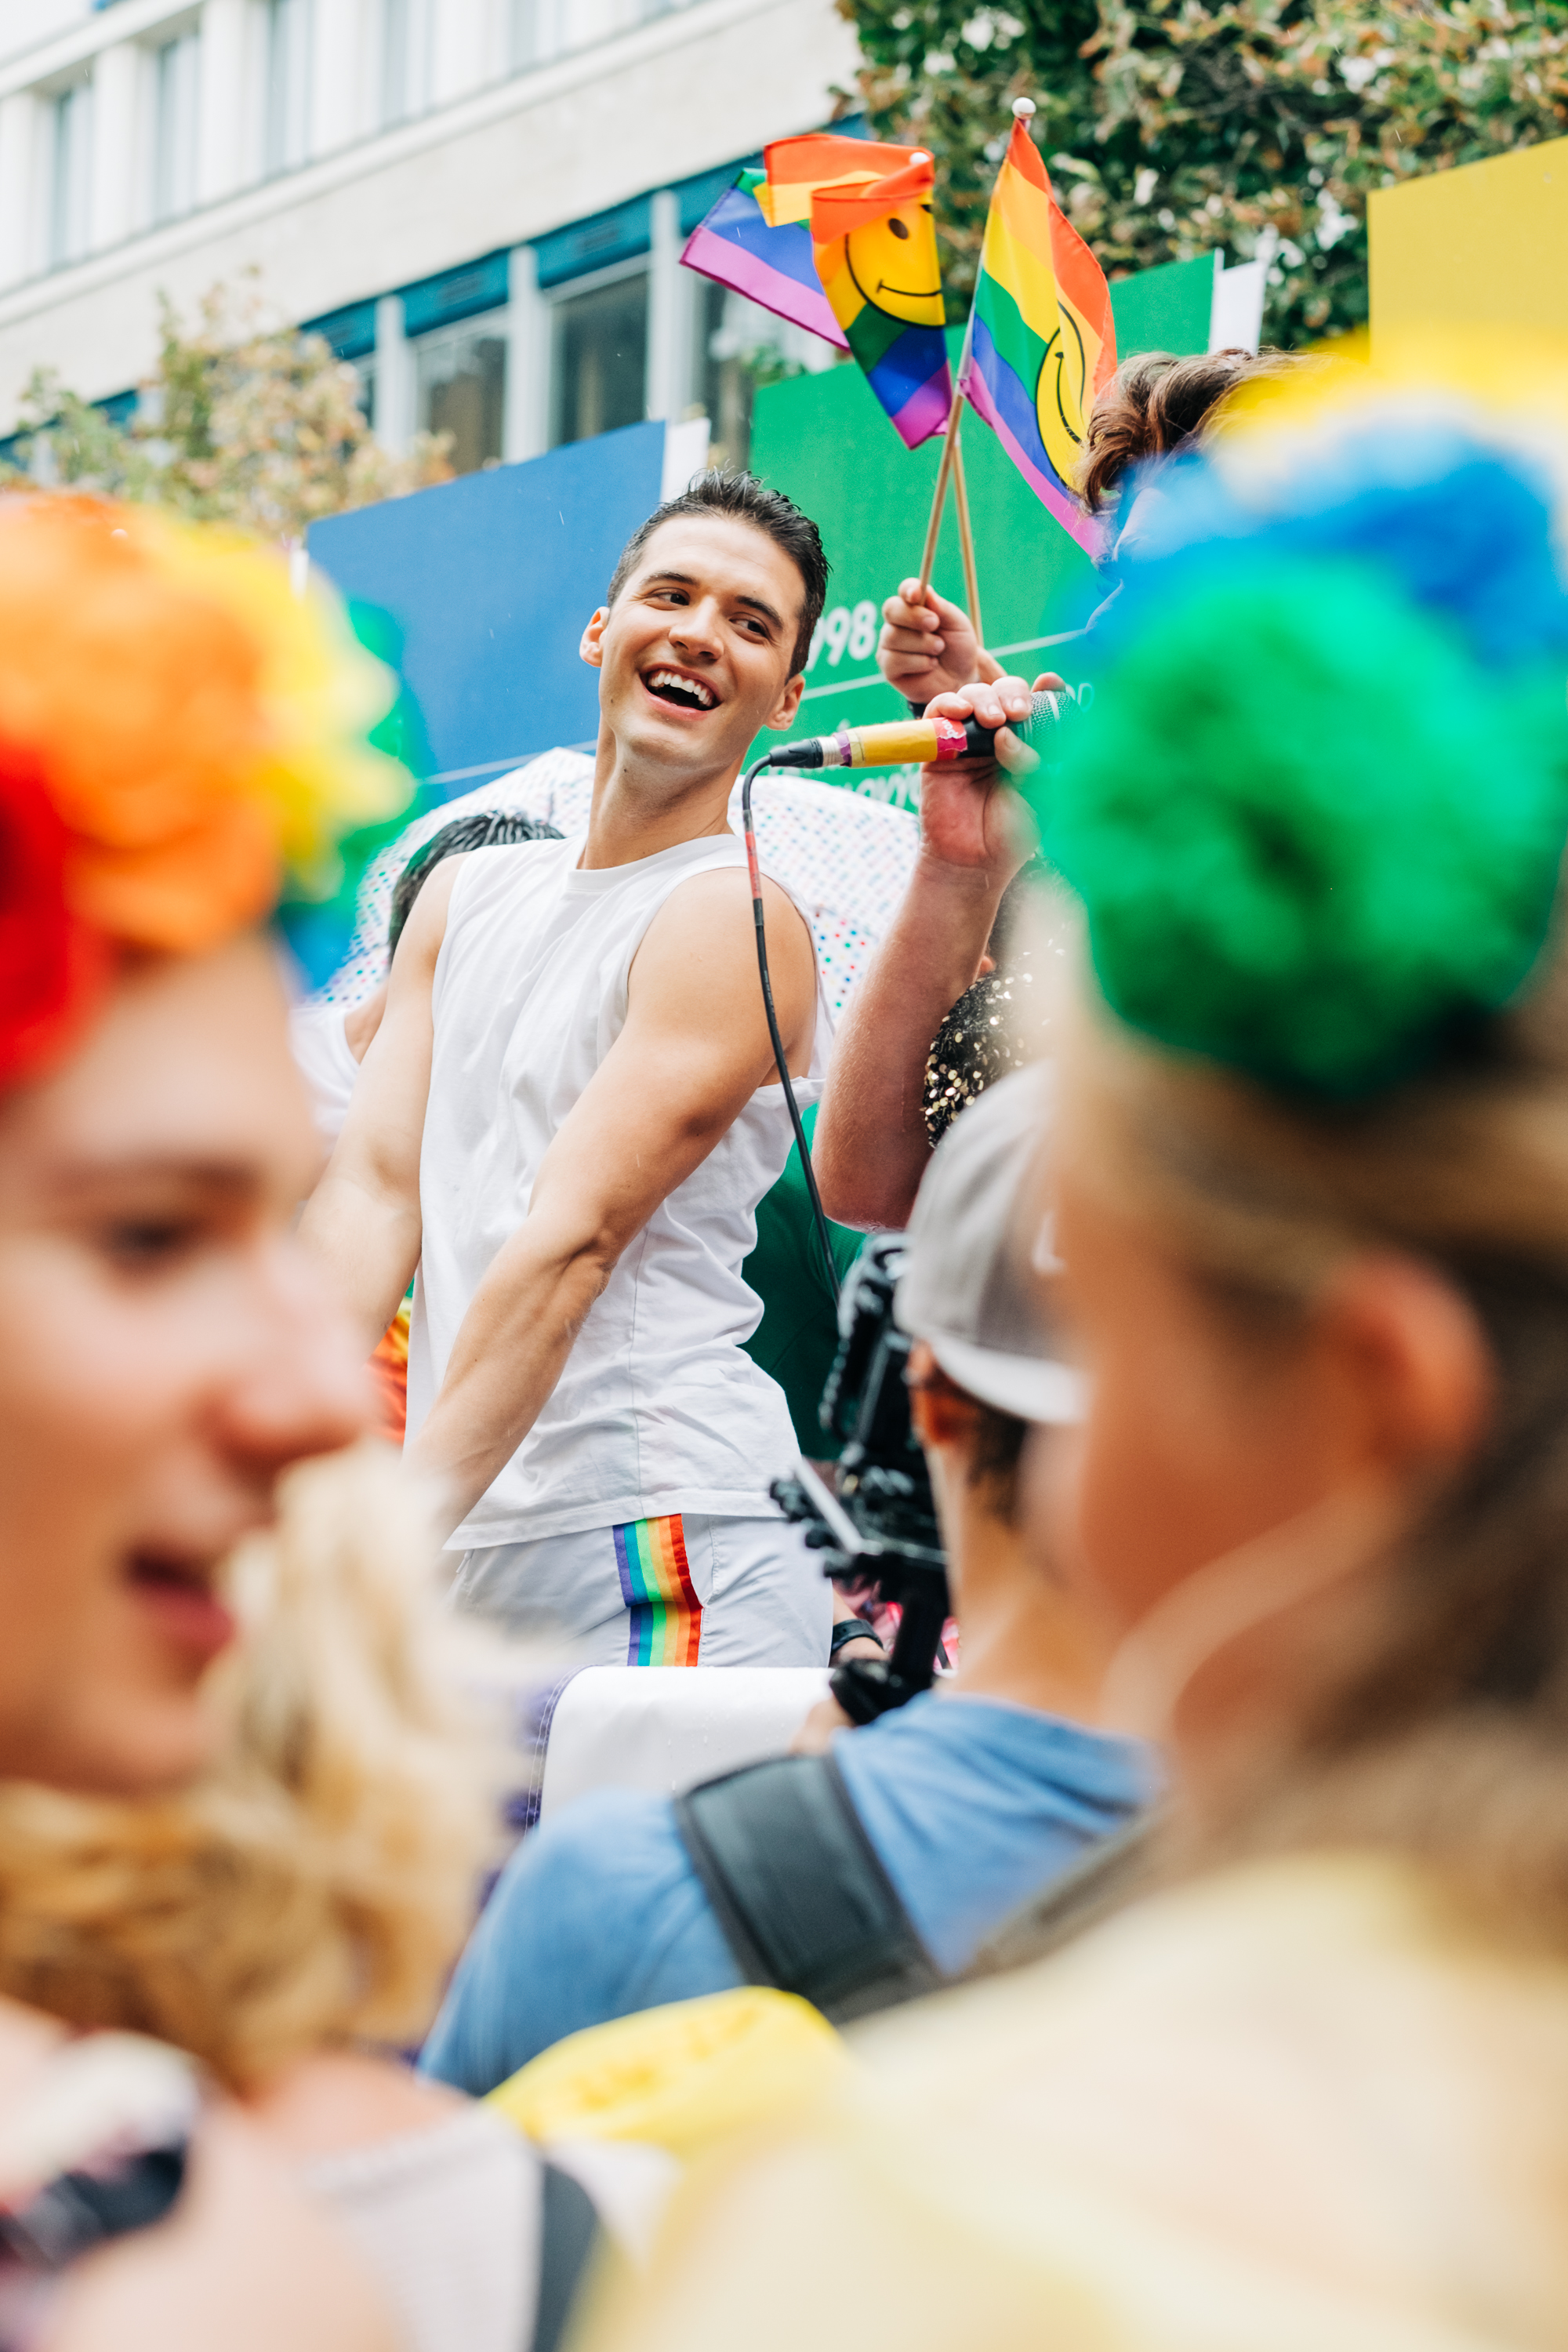 Prague Pride 2019 (23 of 47).jpg